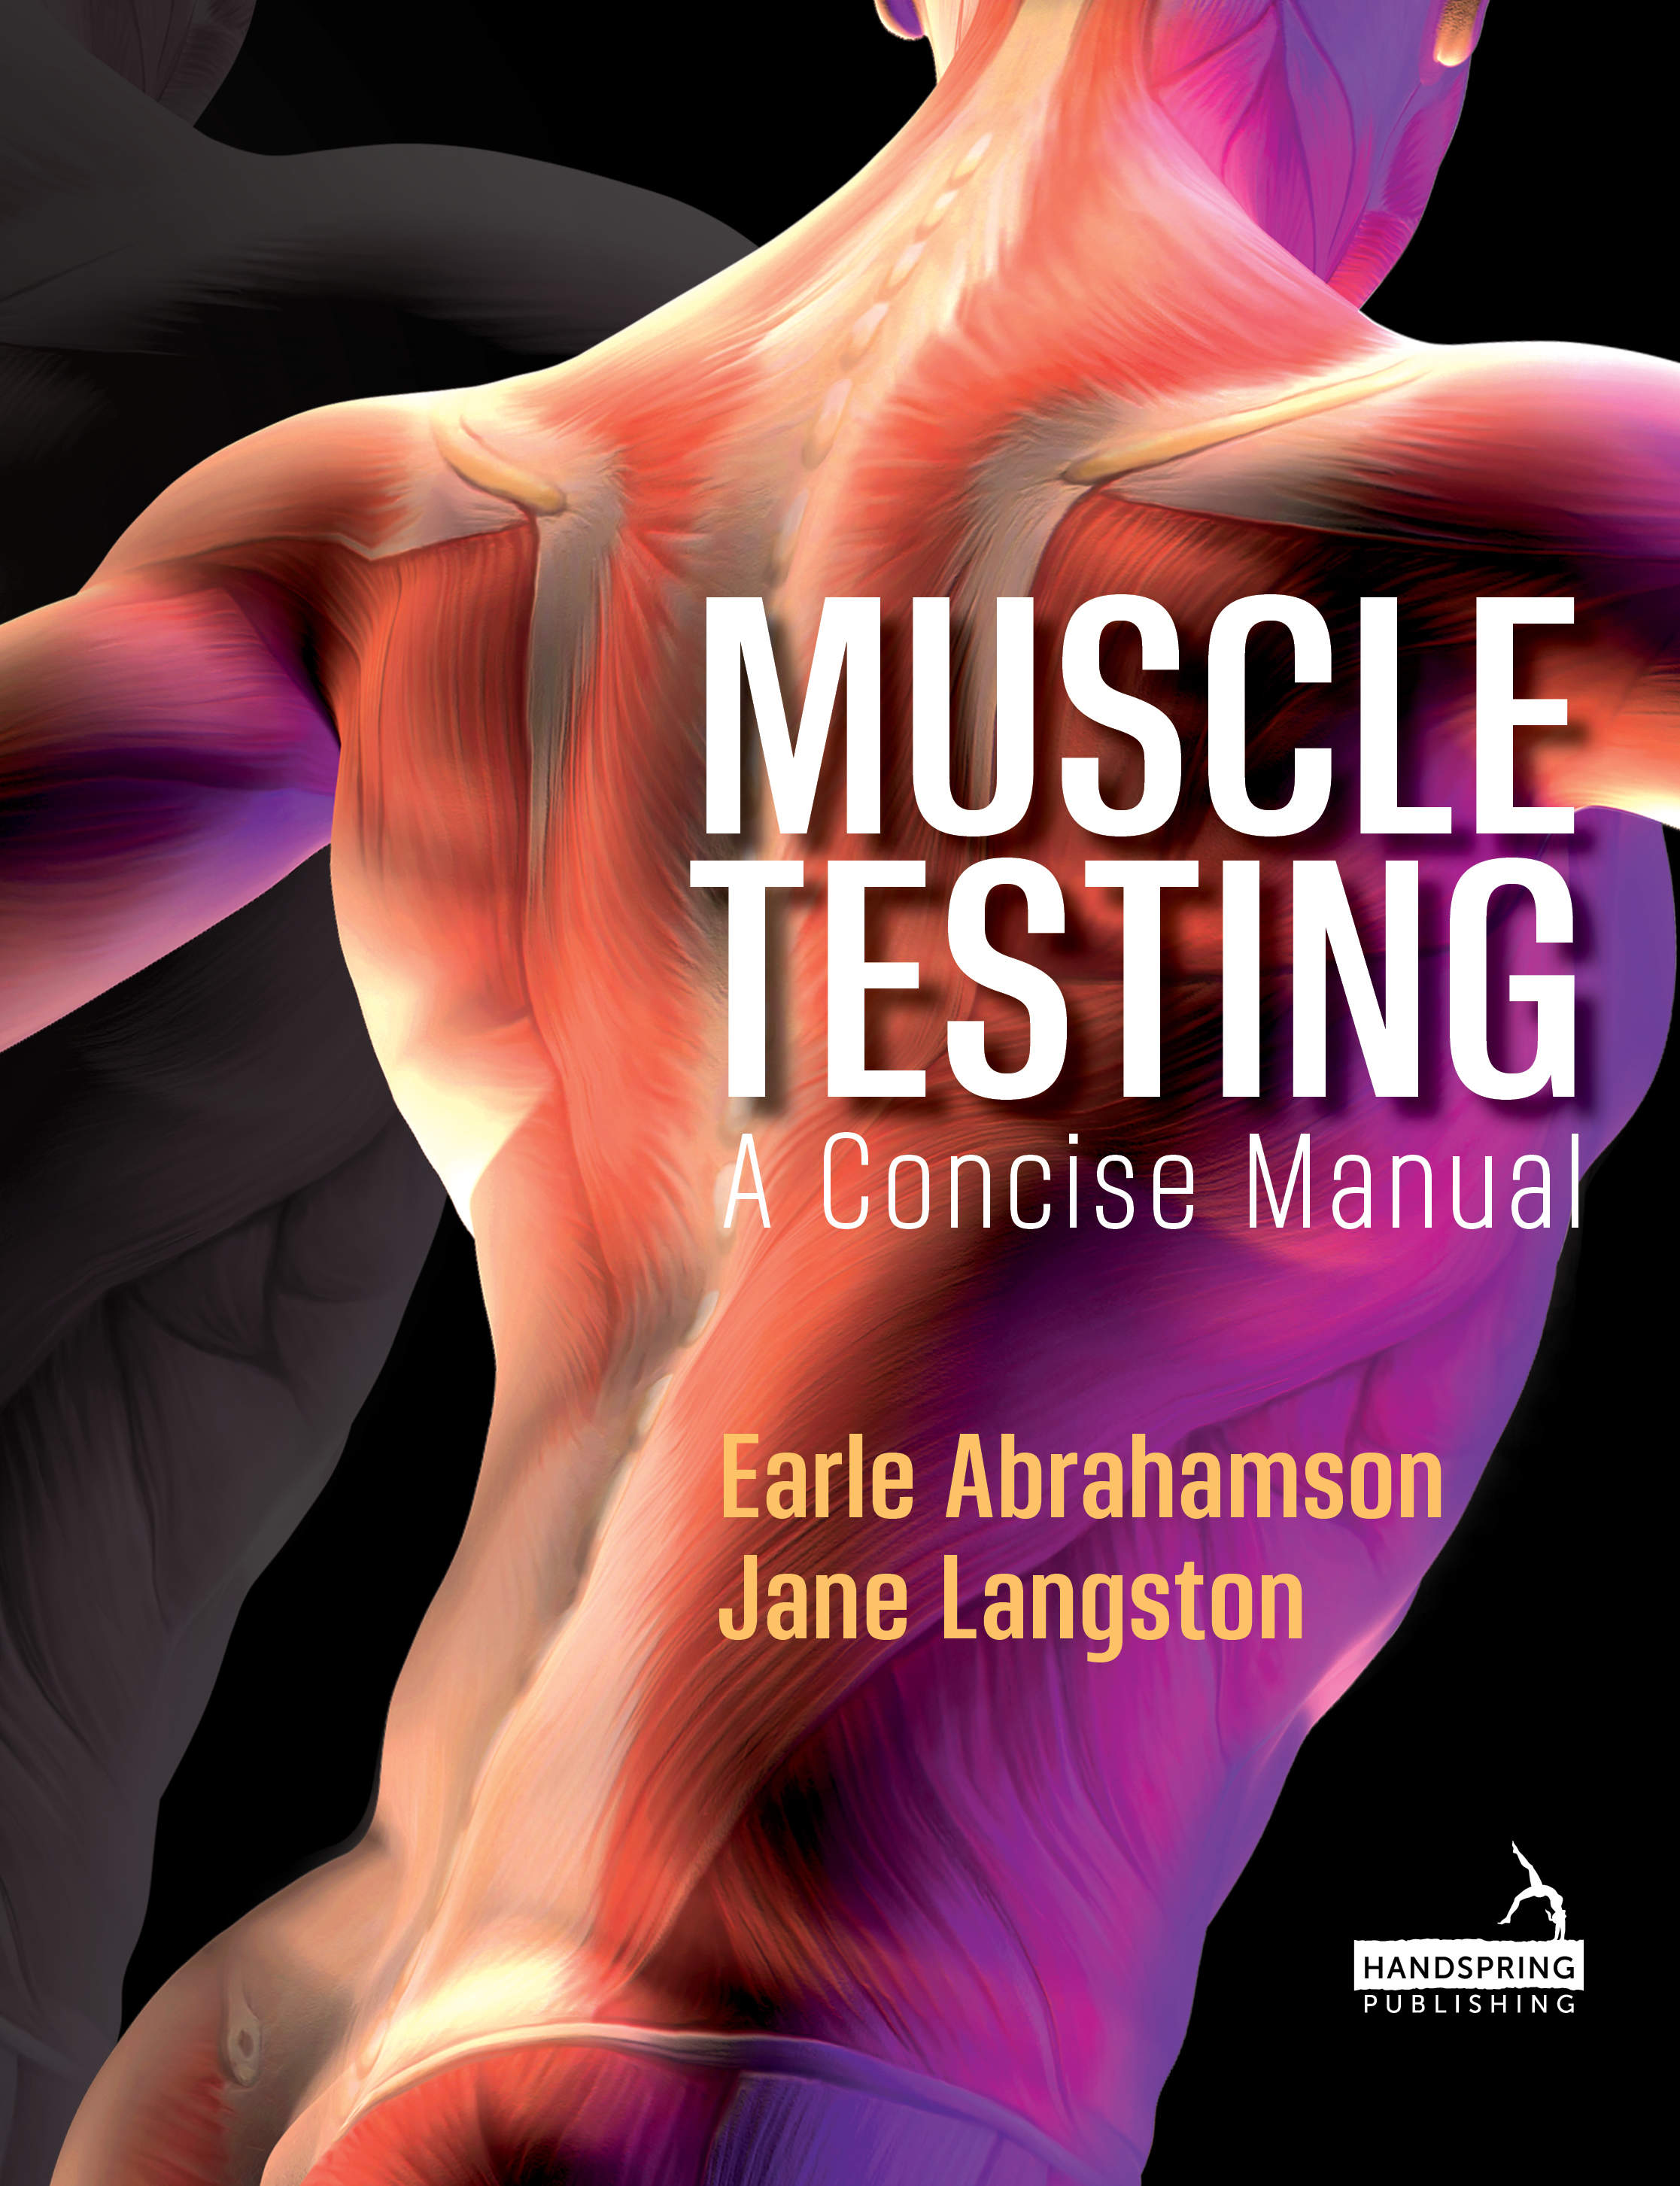 Making Sense of Muscle Testing!